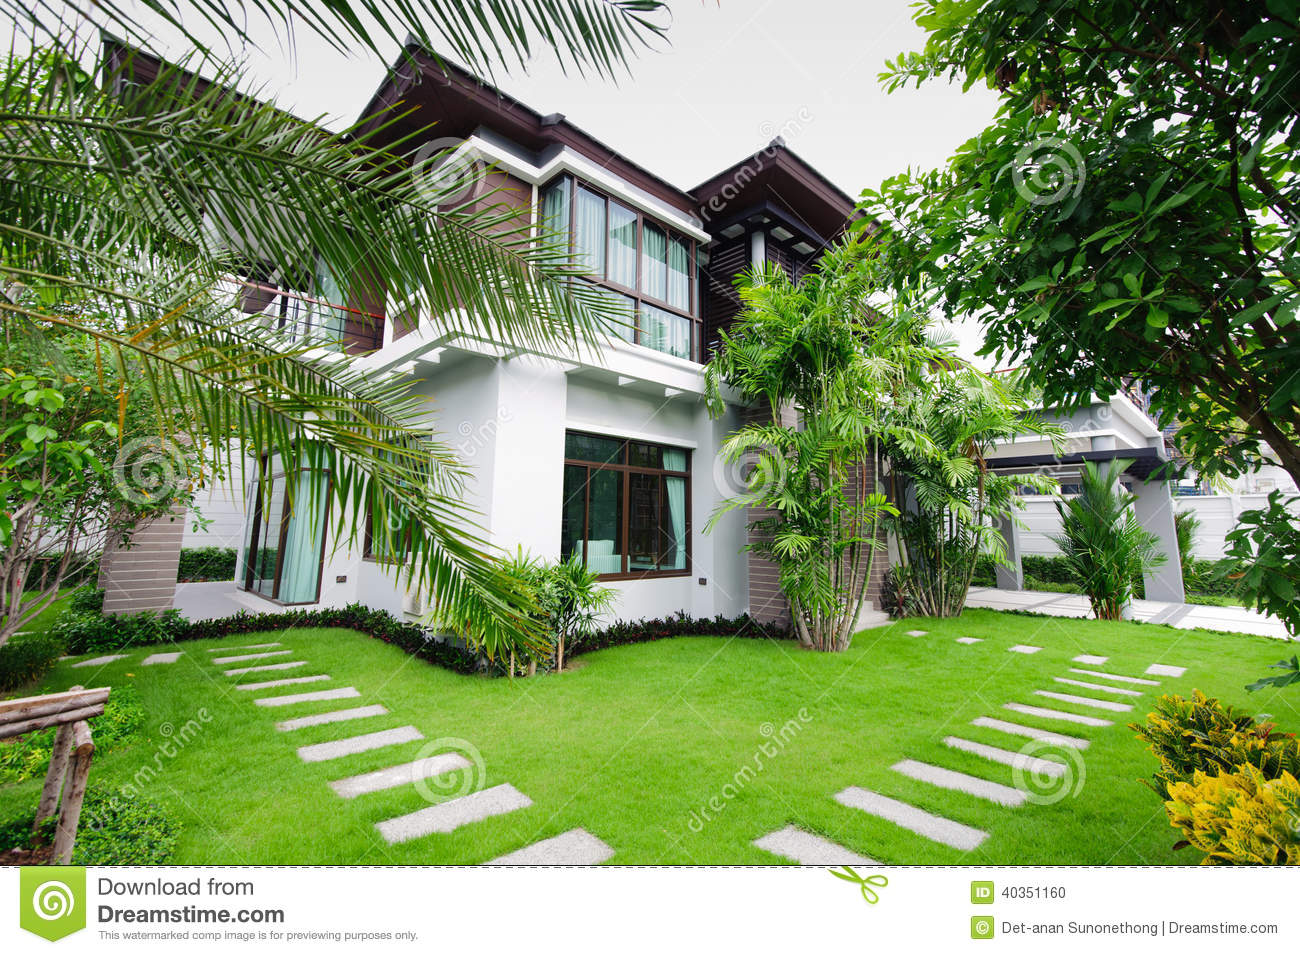 Maison moderne dans le jardin photo stock image 40351160 for Jardin moderne photo